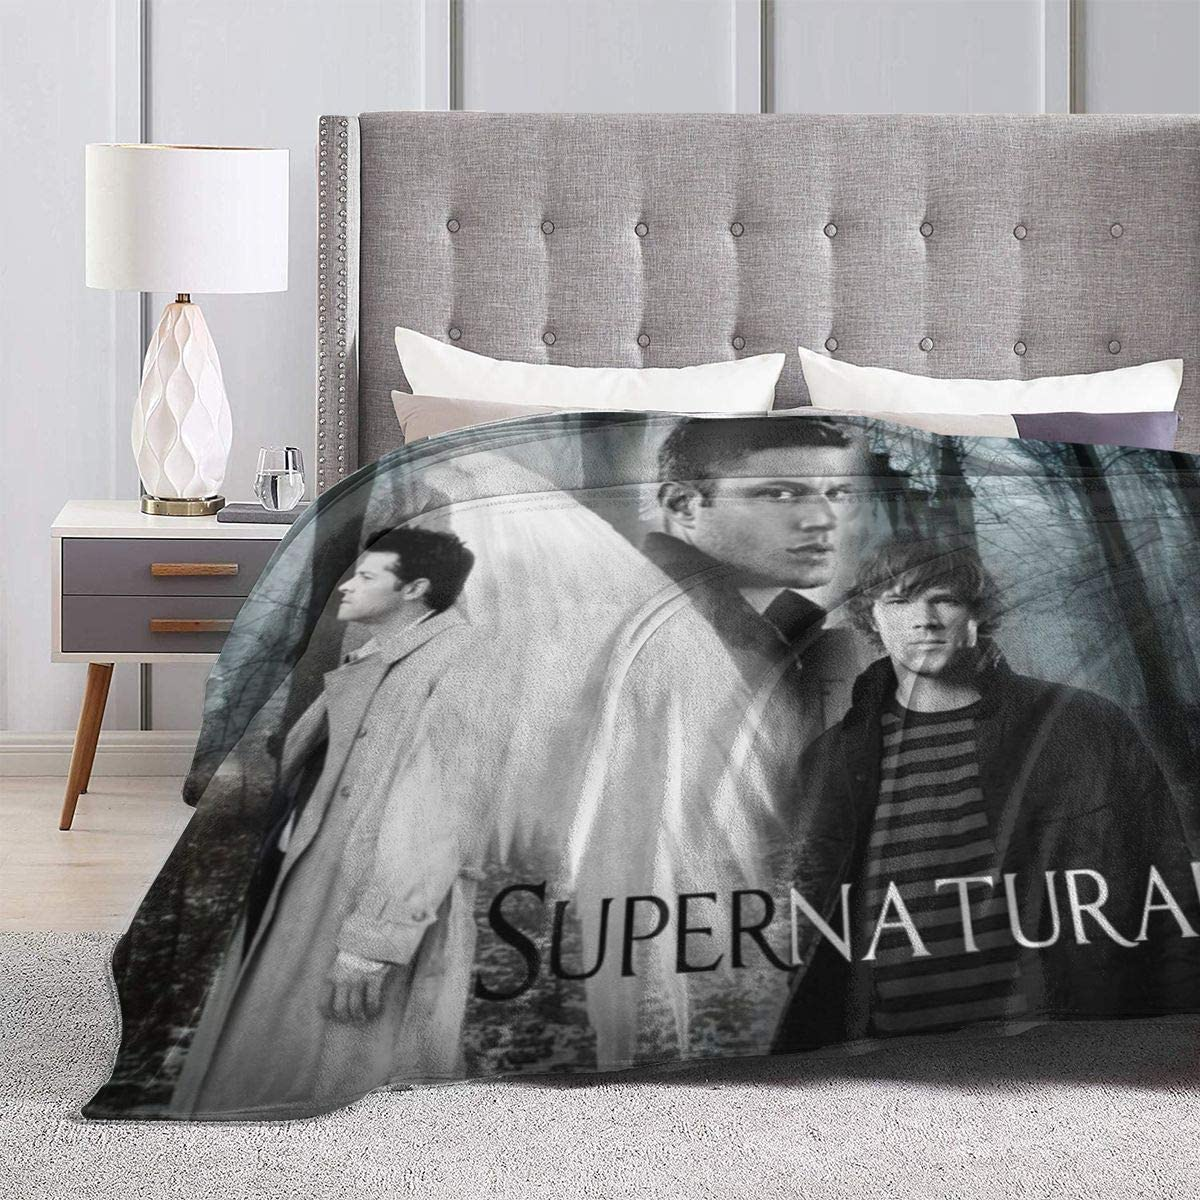 Supernatural Blanket Warm Plush Cozy Soft Blankets